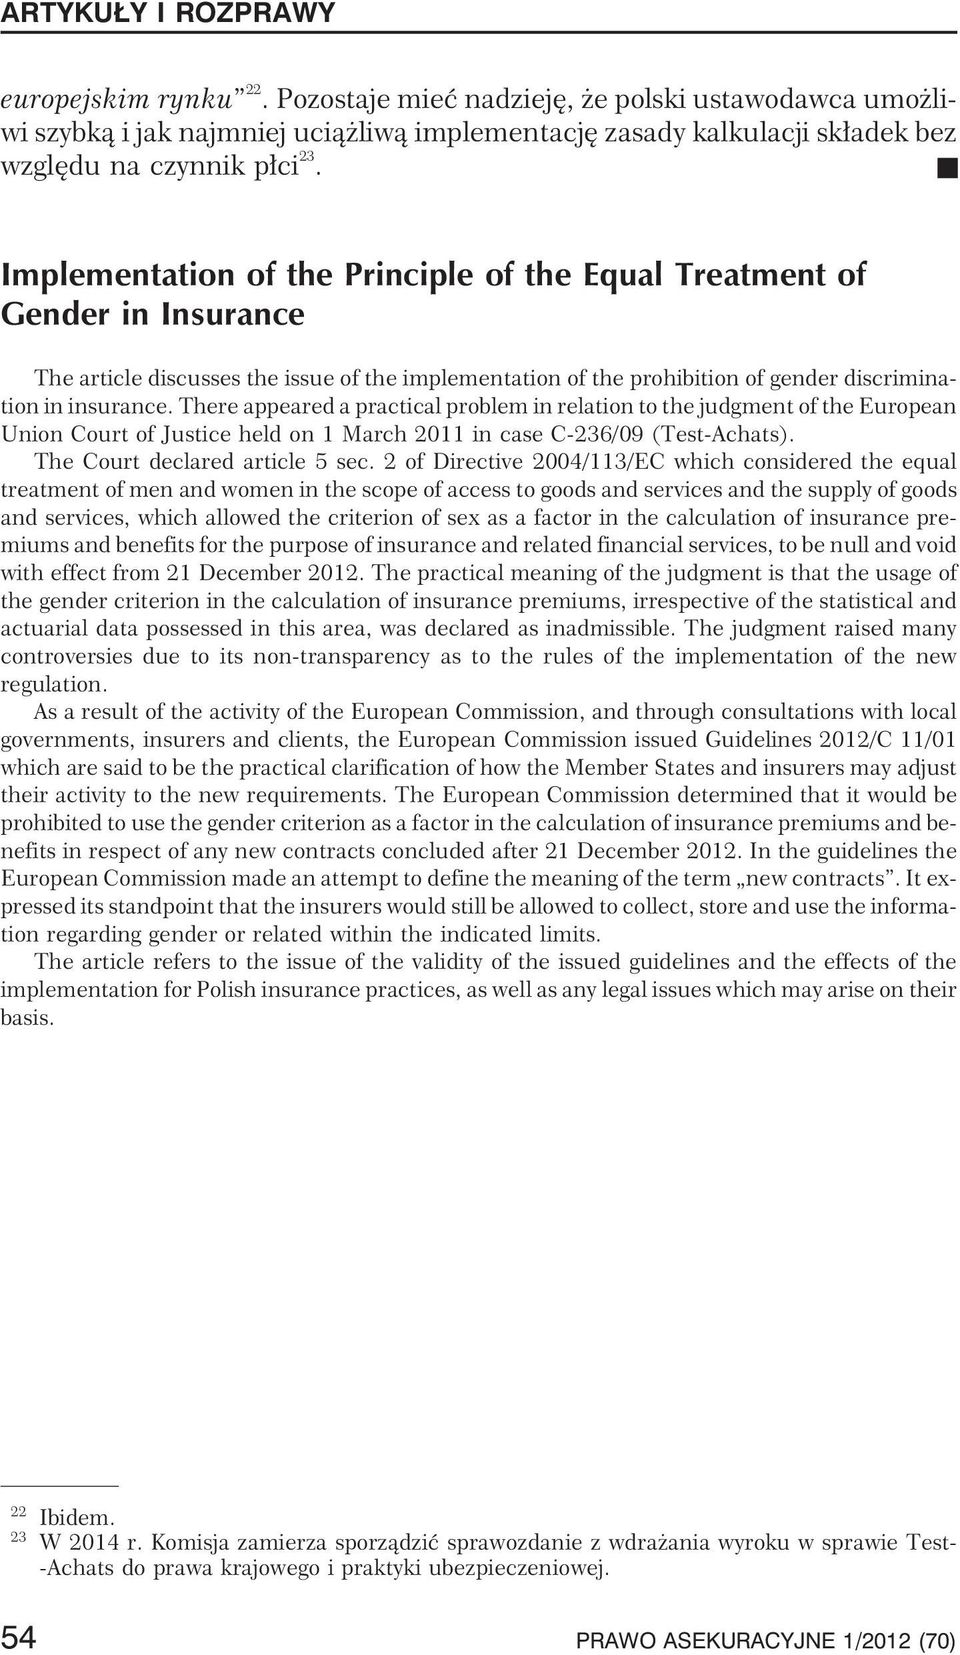 There appeared a practical probleminrelationtothejudgmentoftheeuropean Union Court of Justice held on 1 March 2011 in case C-236/09 (Test-Achats). The Court declared article 5 sec.